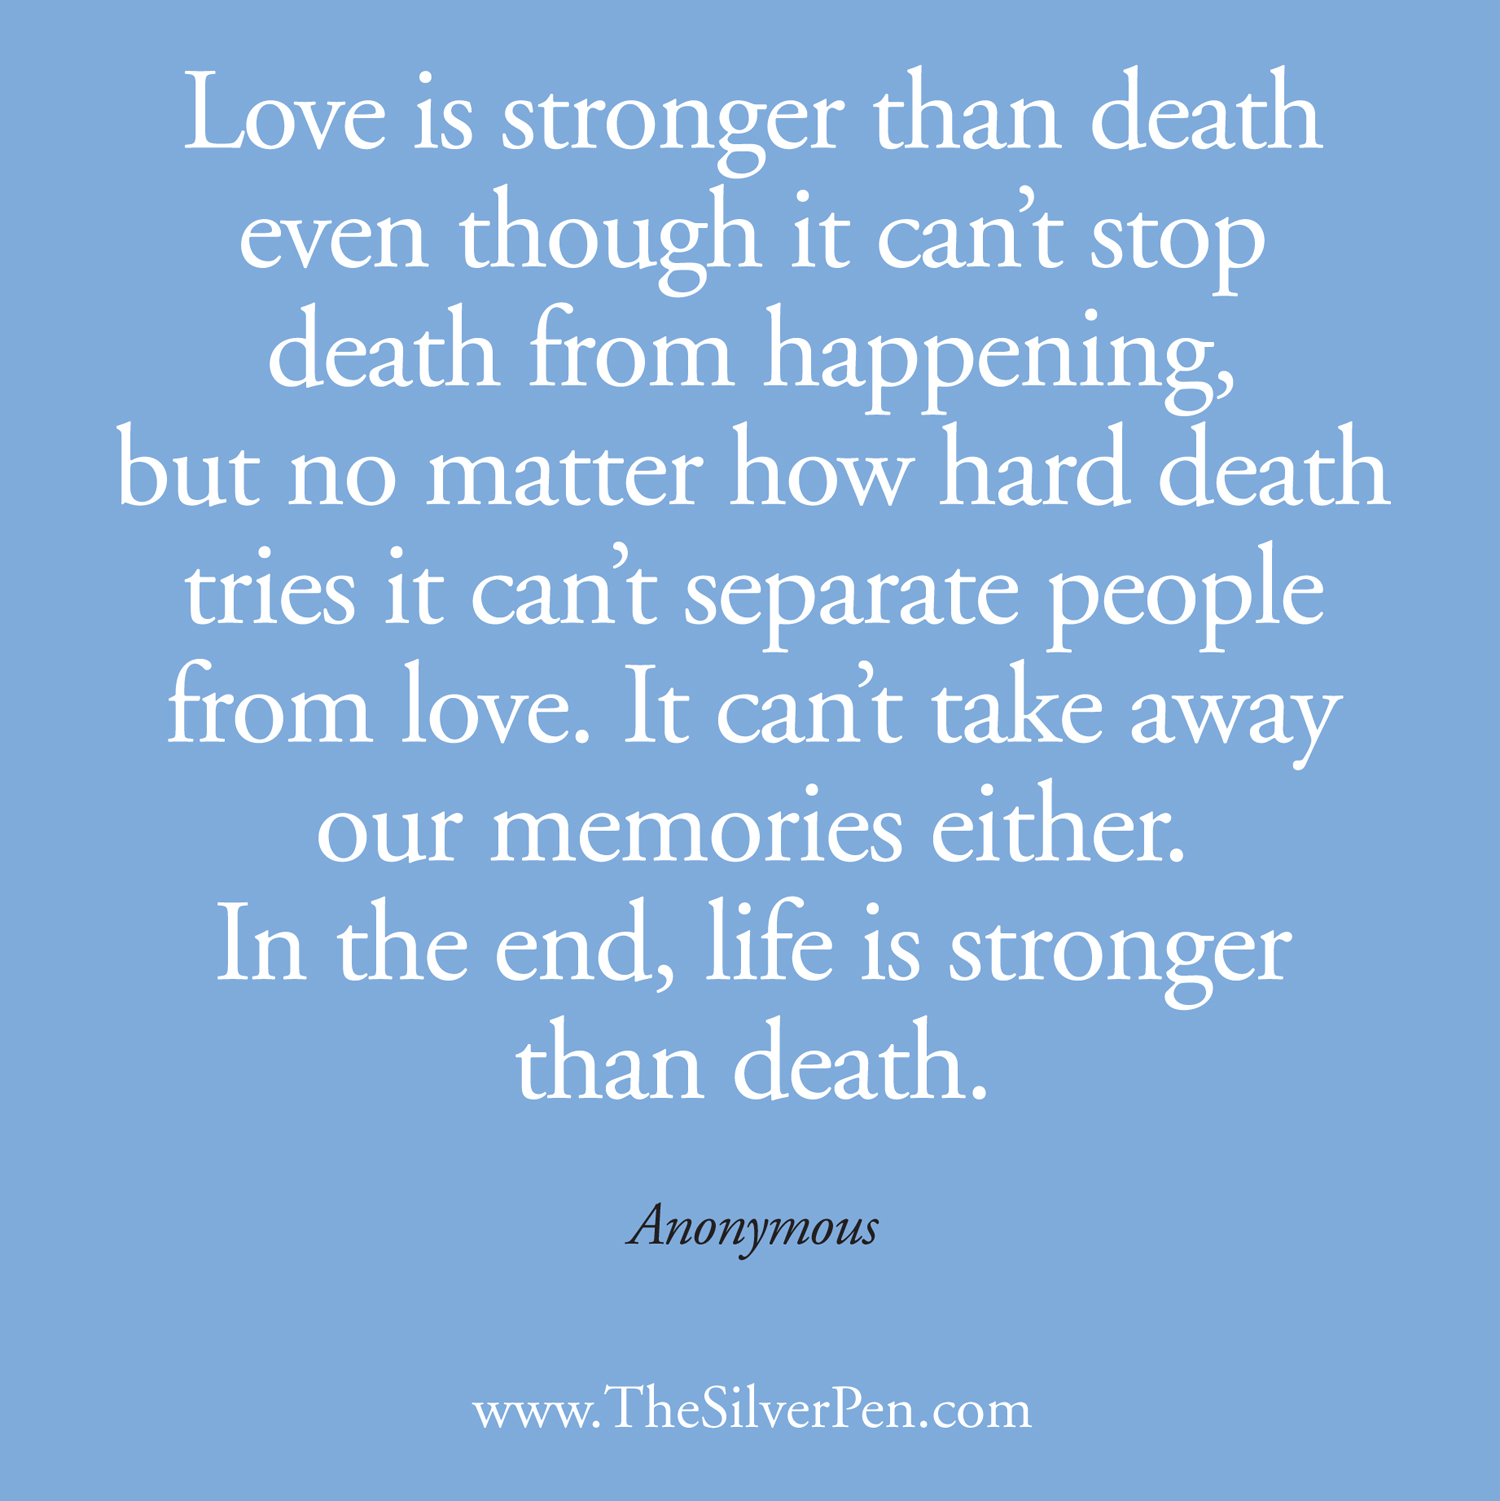 quotes about after death 324 quotes love is stronger than death even though it can t stop death from happening